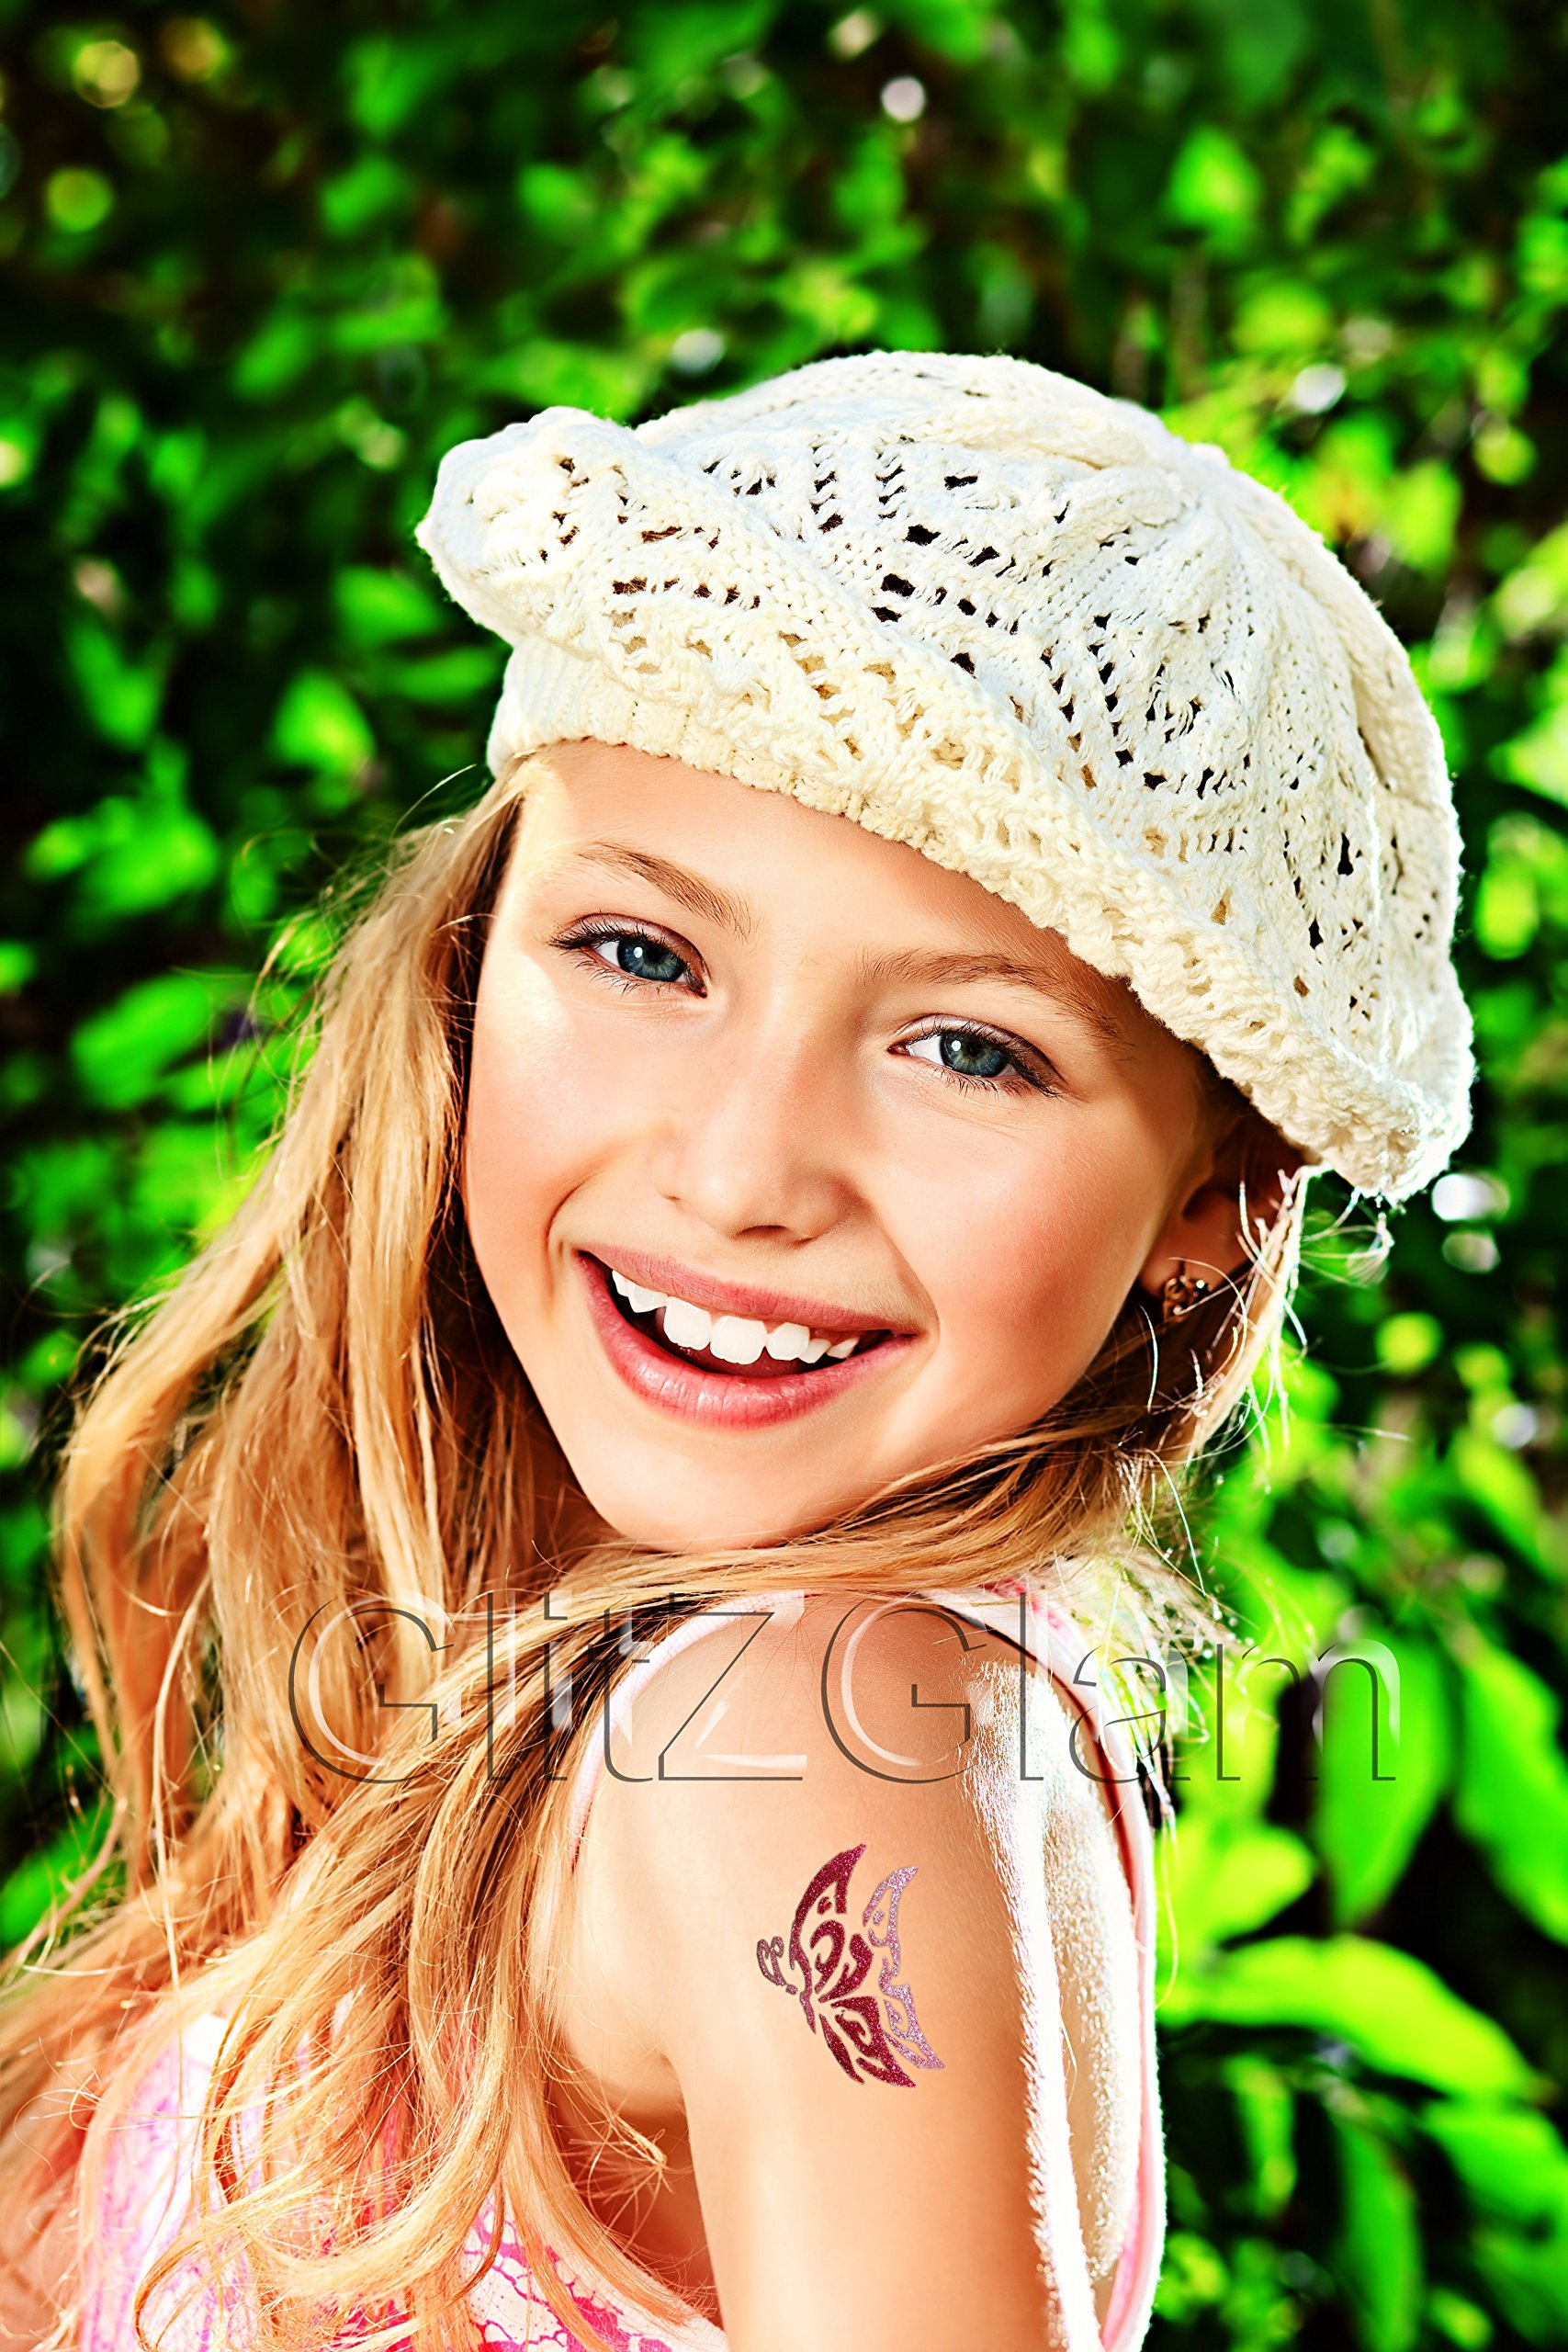 LIL DIVAS Glitter Tattoo Kit with 6 Large Glitters & 12 Stencils for Temporary Tattoos - HYPOALLERGENIC and DERMATOLOGIST TESTED! by GlitZGlam (Image #3)